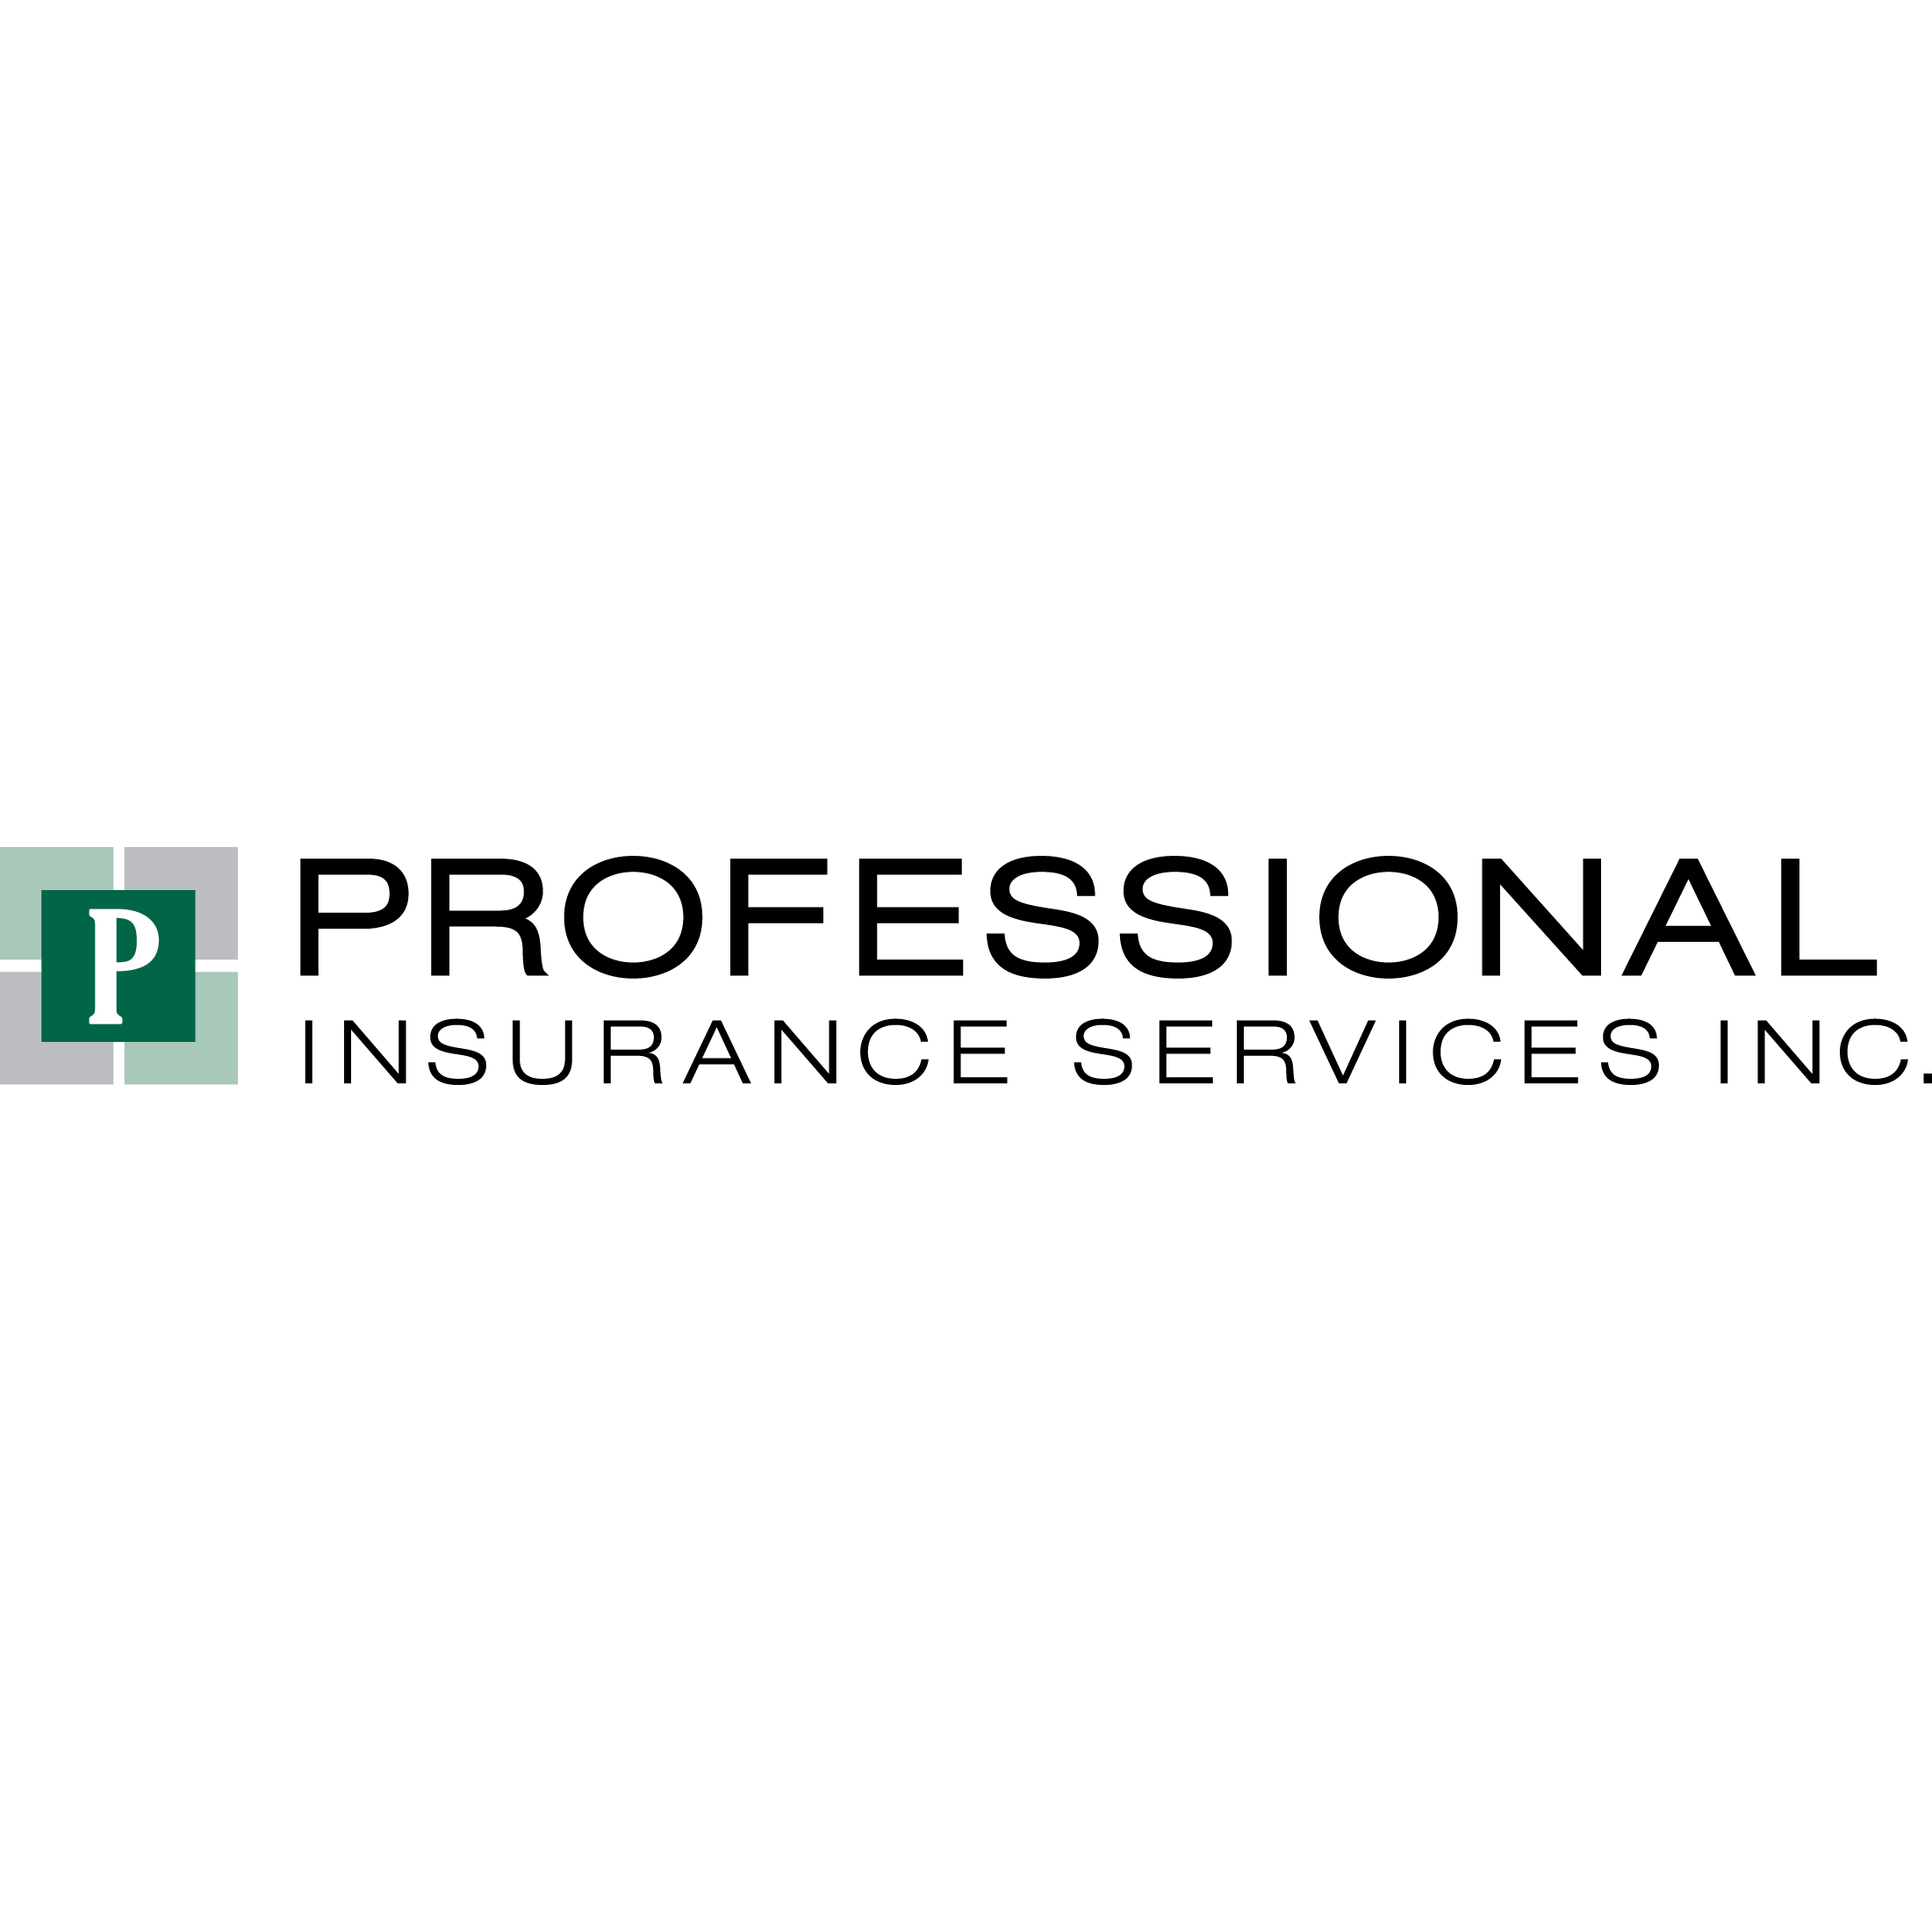 Professional Insurance Services